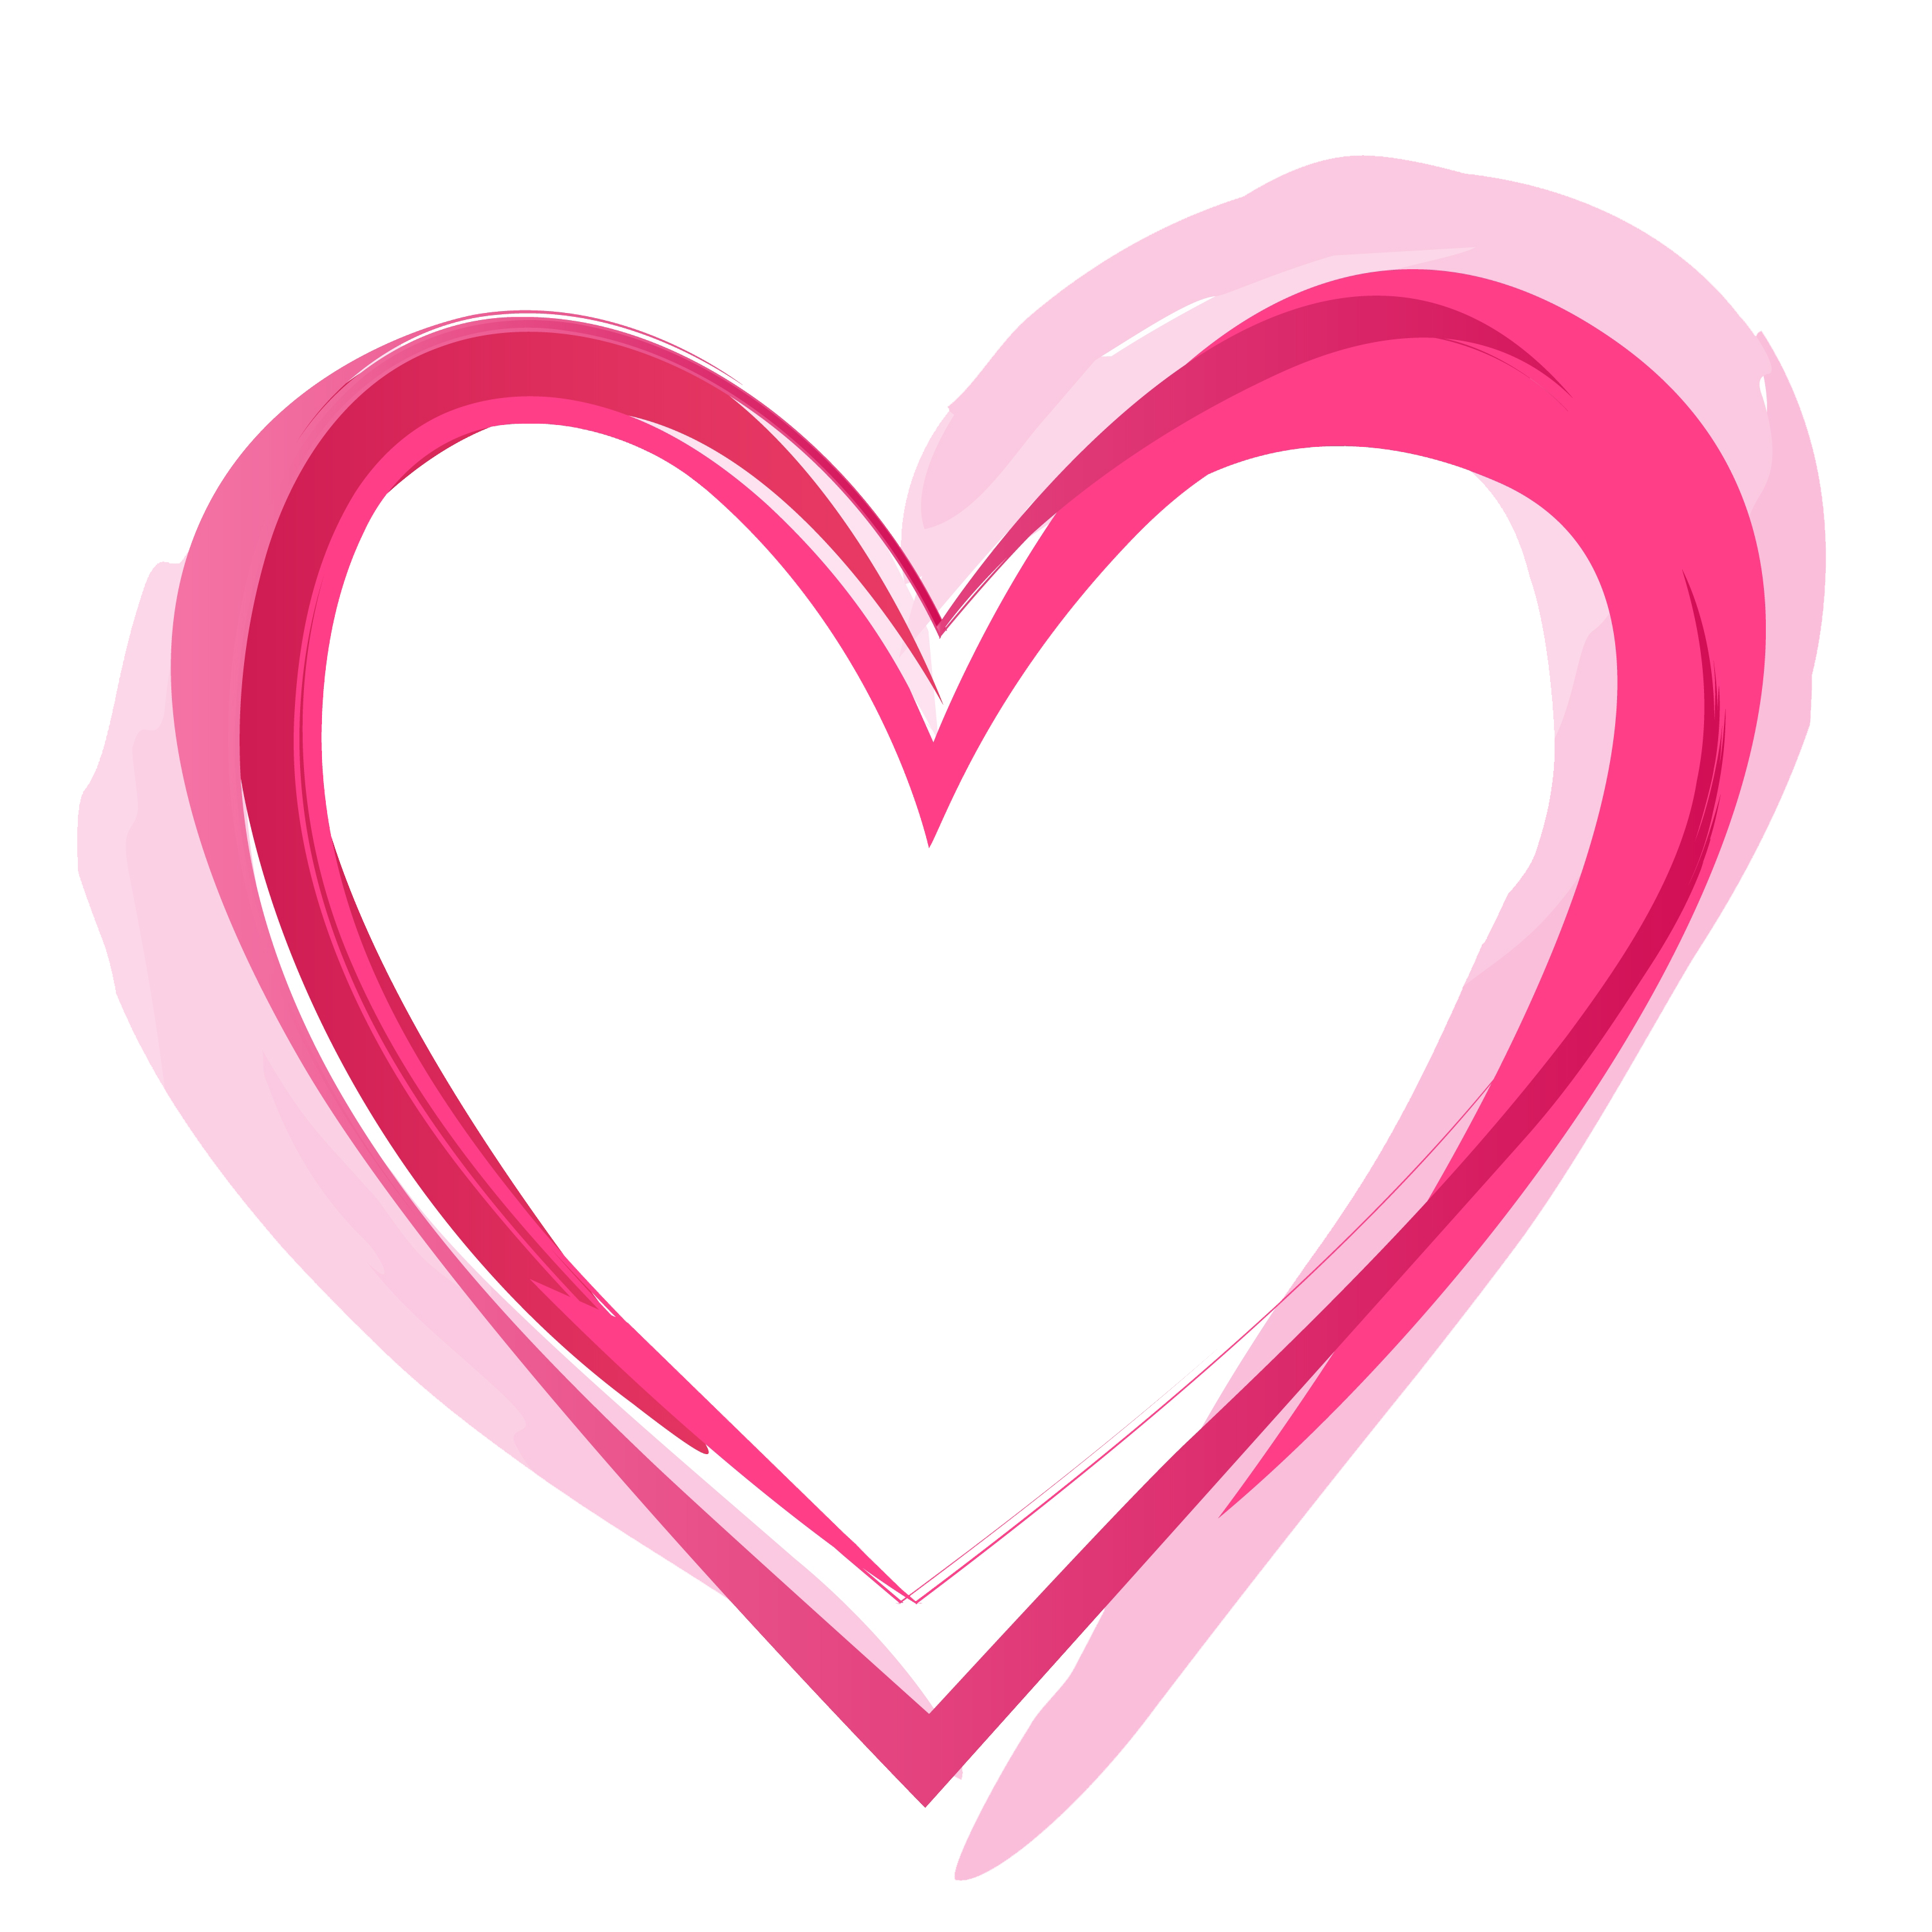 Pink Png Hd - Pink Love Heart PNG HD Transparent Pink Love Heart HD.PNG Images ...